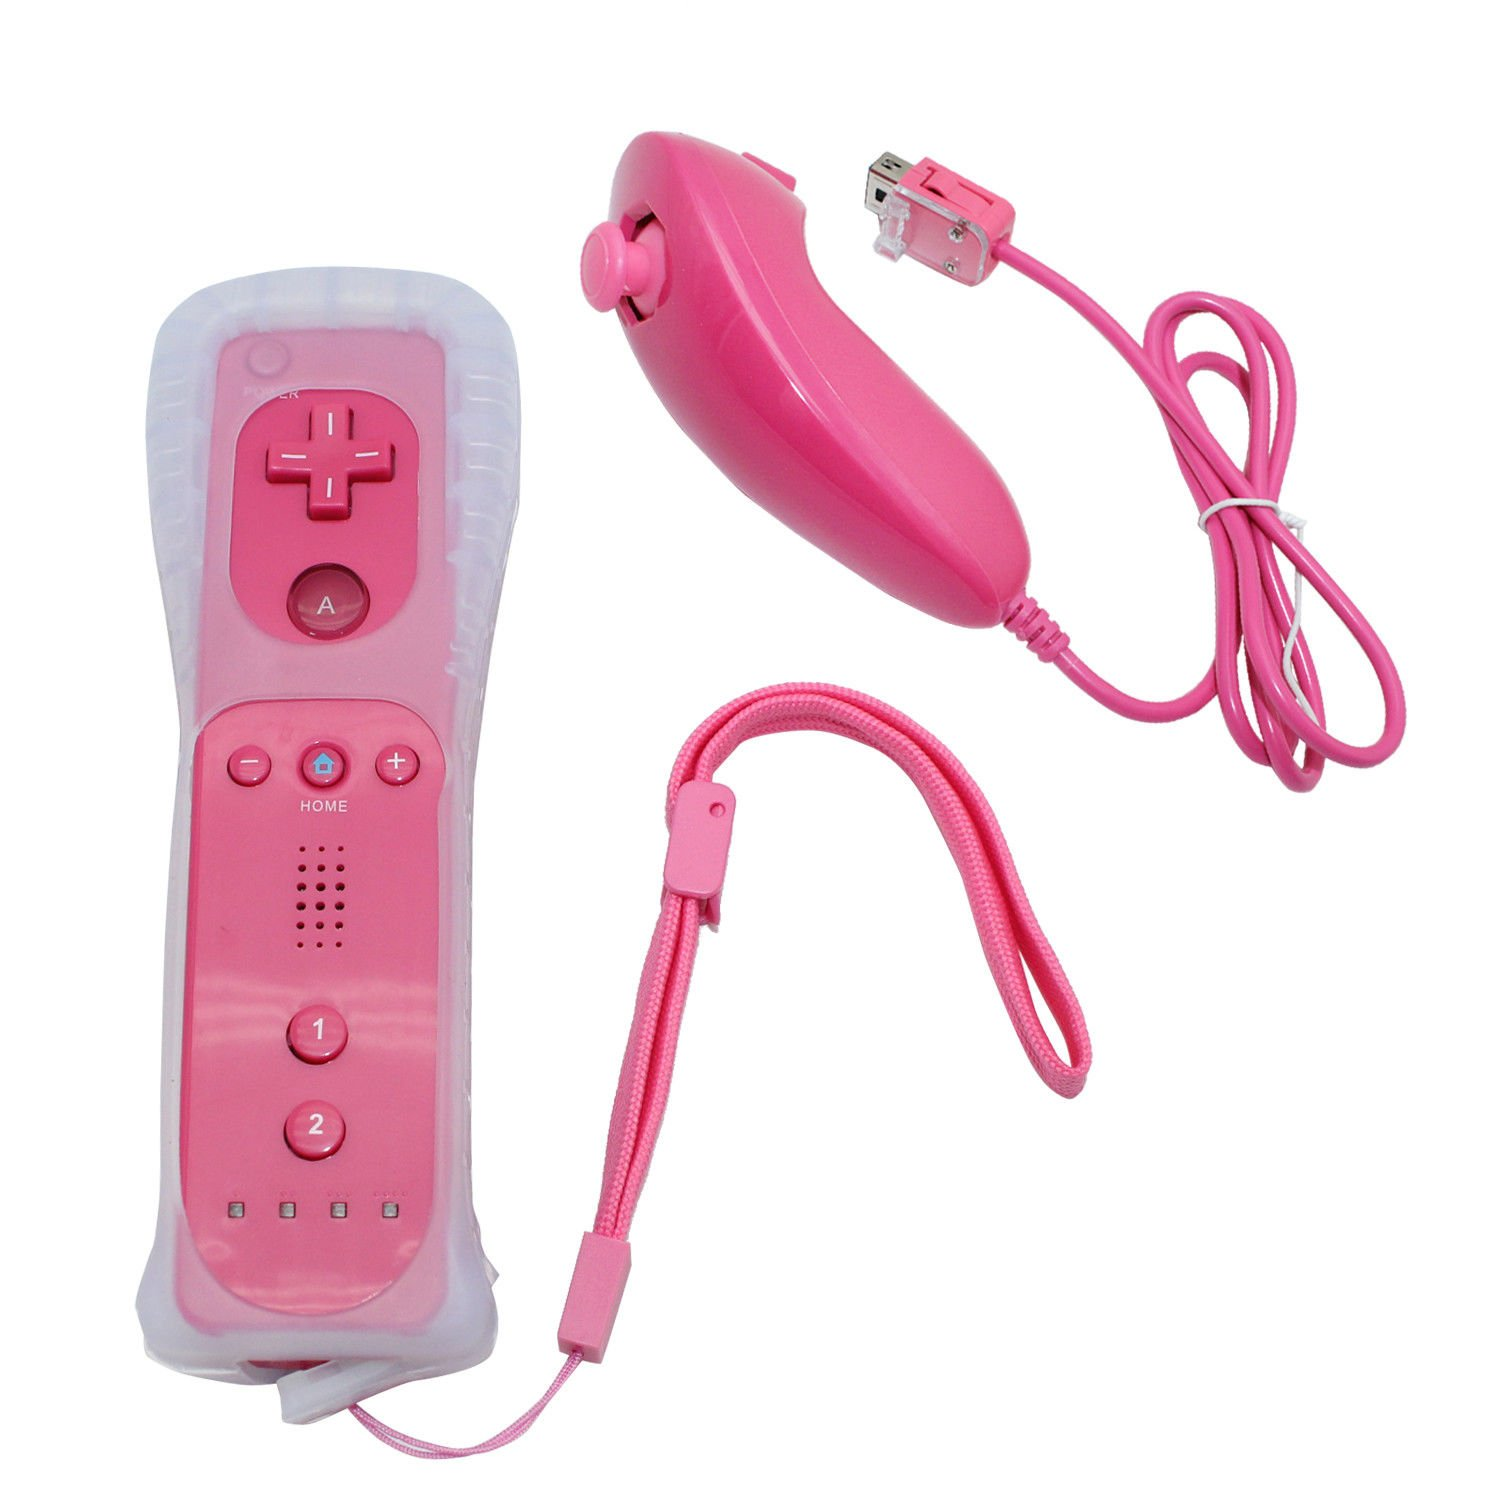 Prodico Wii Remote and Nunchuck Controller with Silicone Case and Strap for Nintendo Wii Wii U Wii mini (pink)